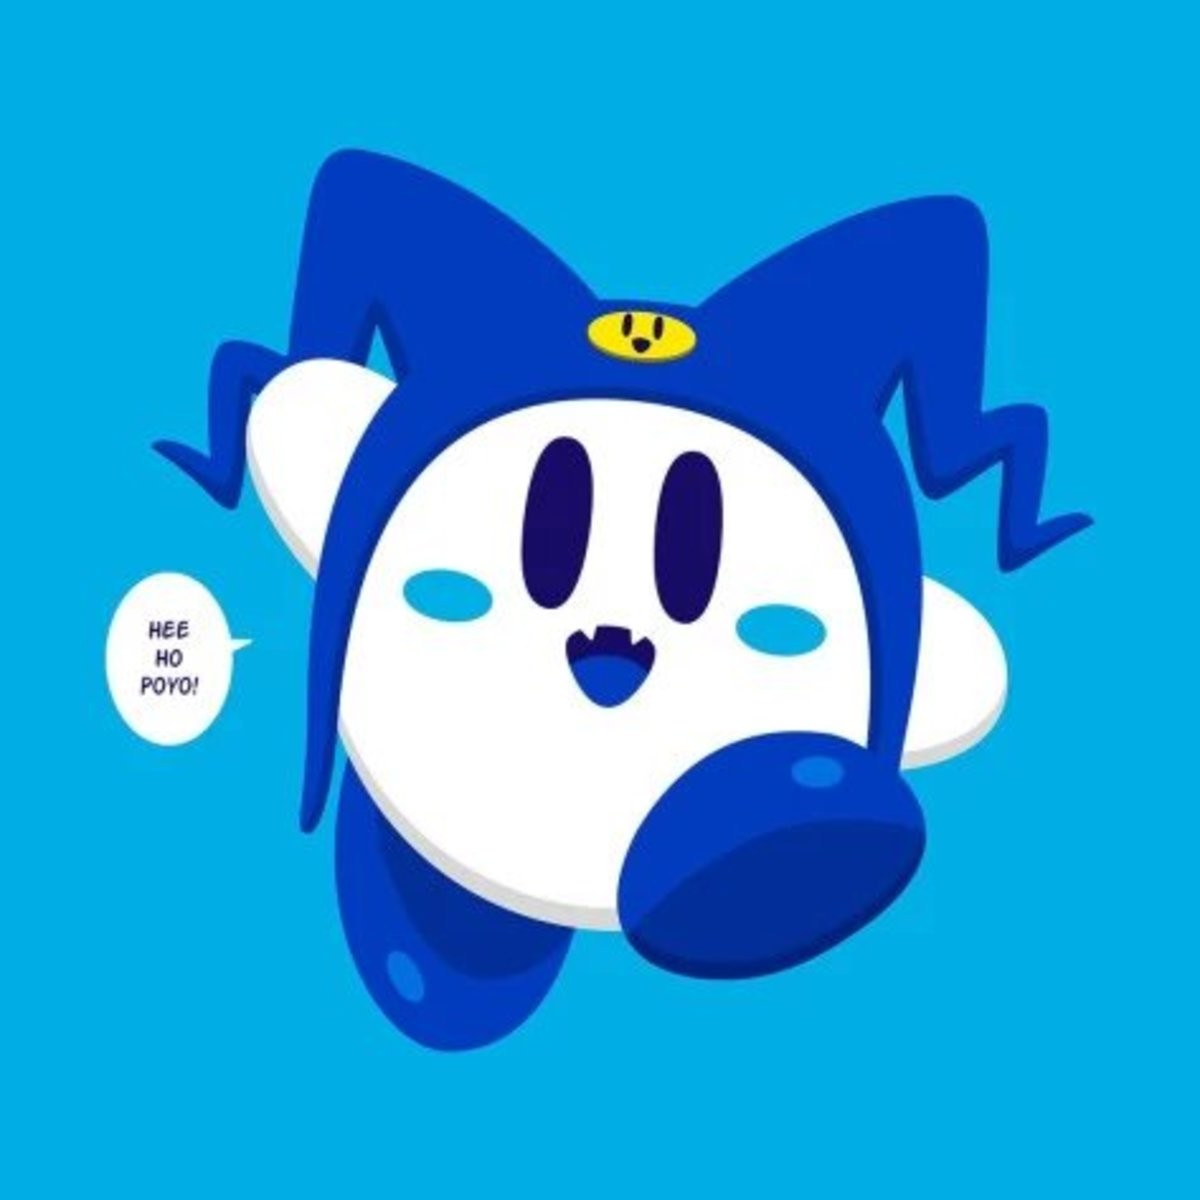 Po-hee-yo-ho. join list: Jacked (54 subs)Mention History.. i wish i could get a kirby plushie and this only makes me want it more